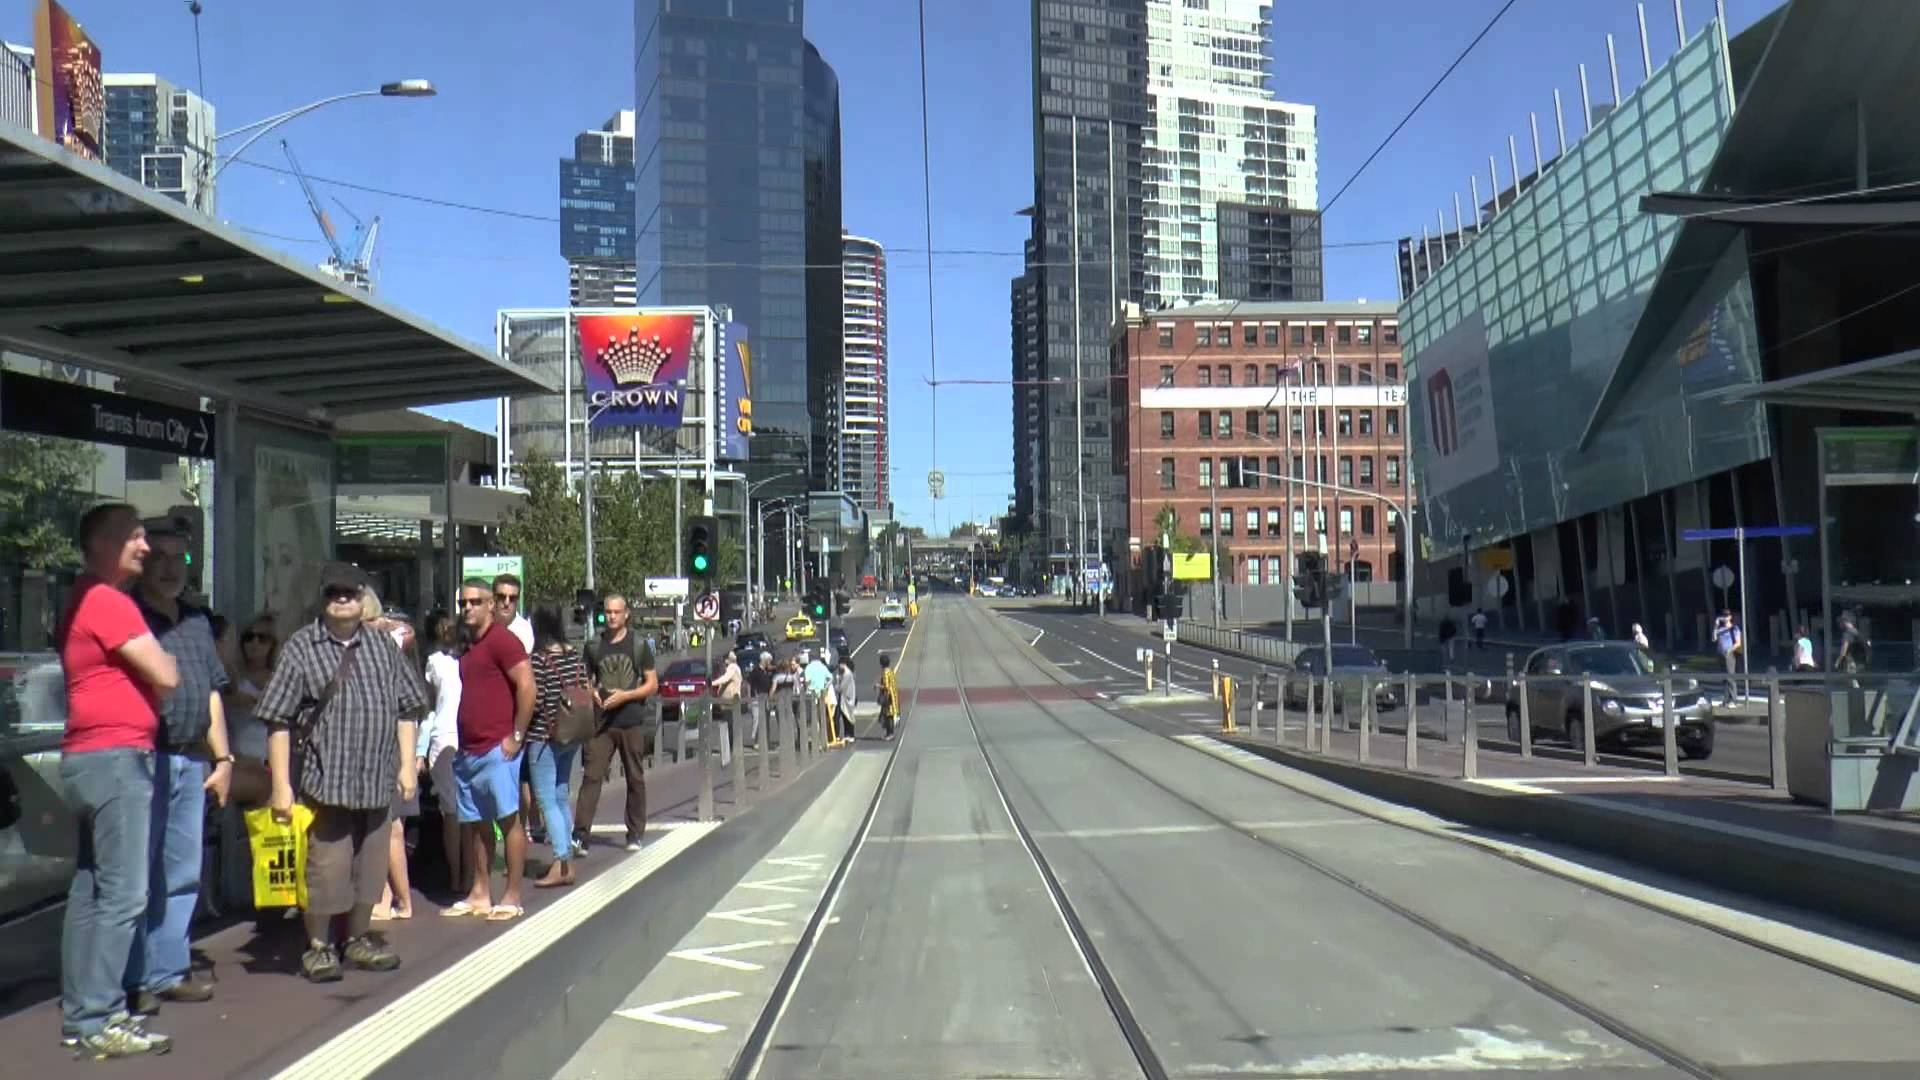 Melbourne Trams – A typical Sunday on Route 96 March 2015 Tram Drivers View